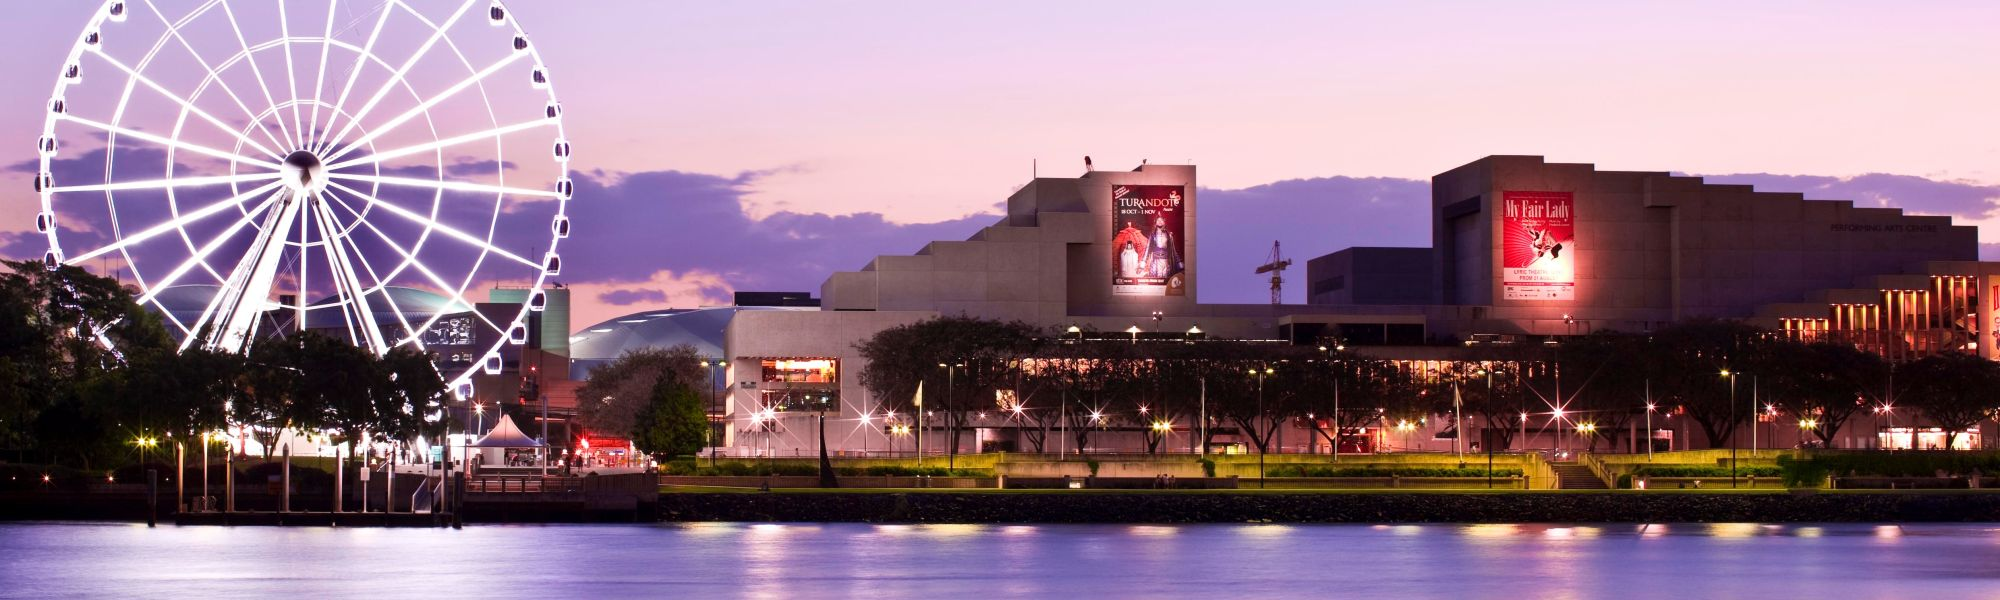 QPAC-Credit-Garry-Schlatter-Atmosphere-Photography-2